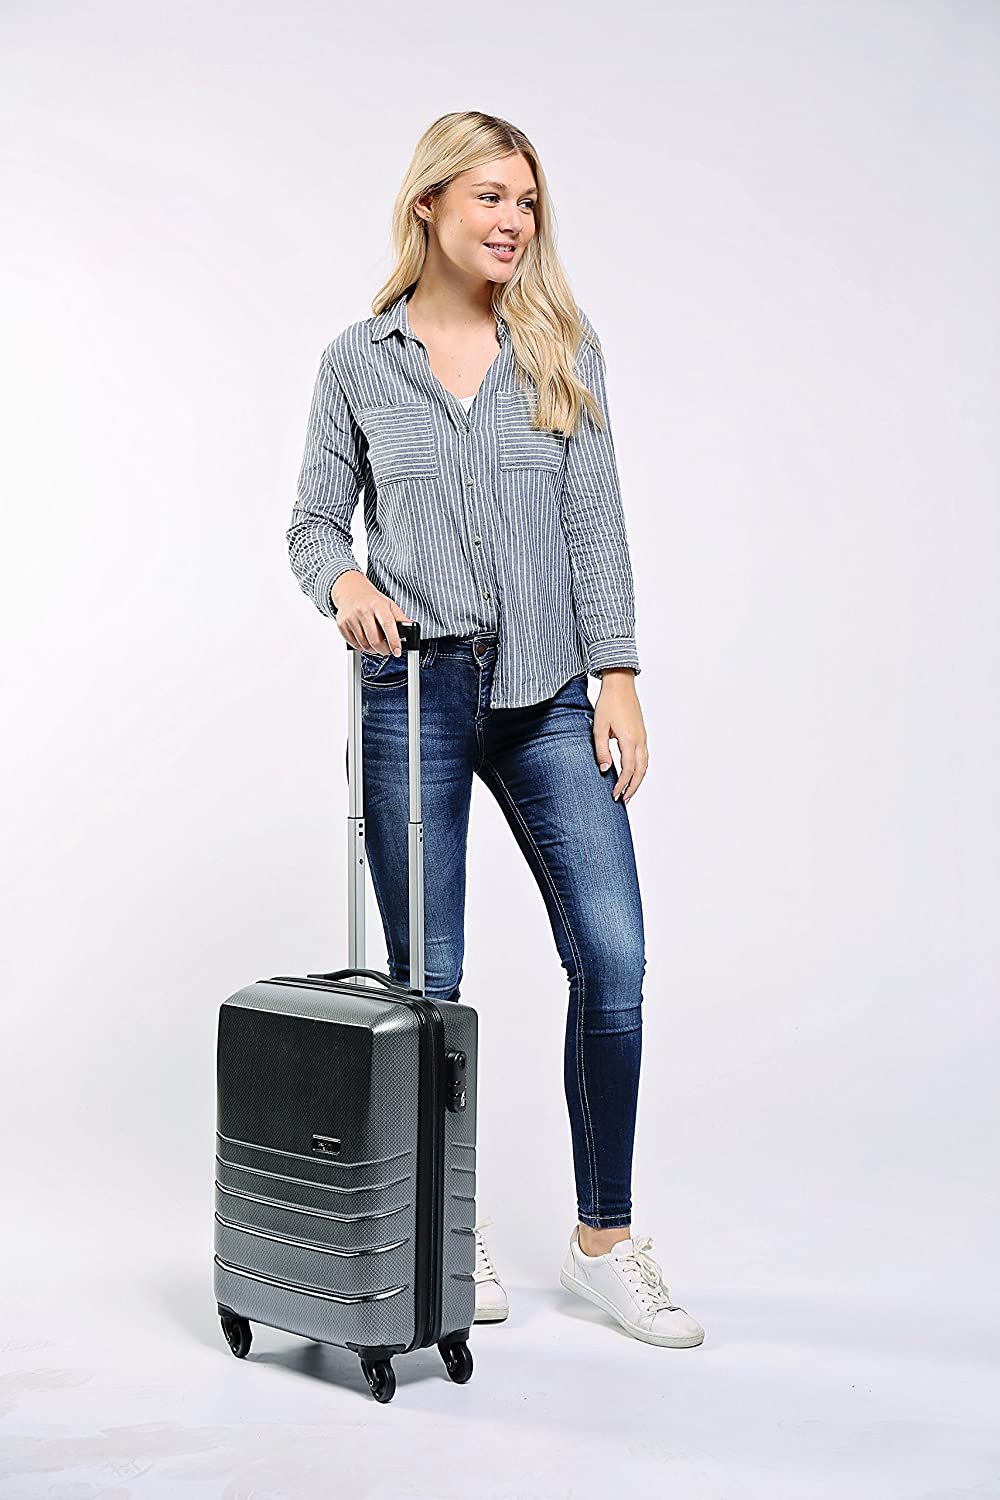 Cabin Max Suitcases with Wheels Carry on Luggage with Spinner Wheels 22x16x8